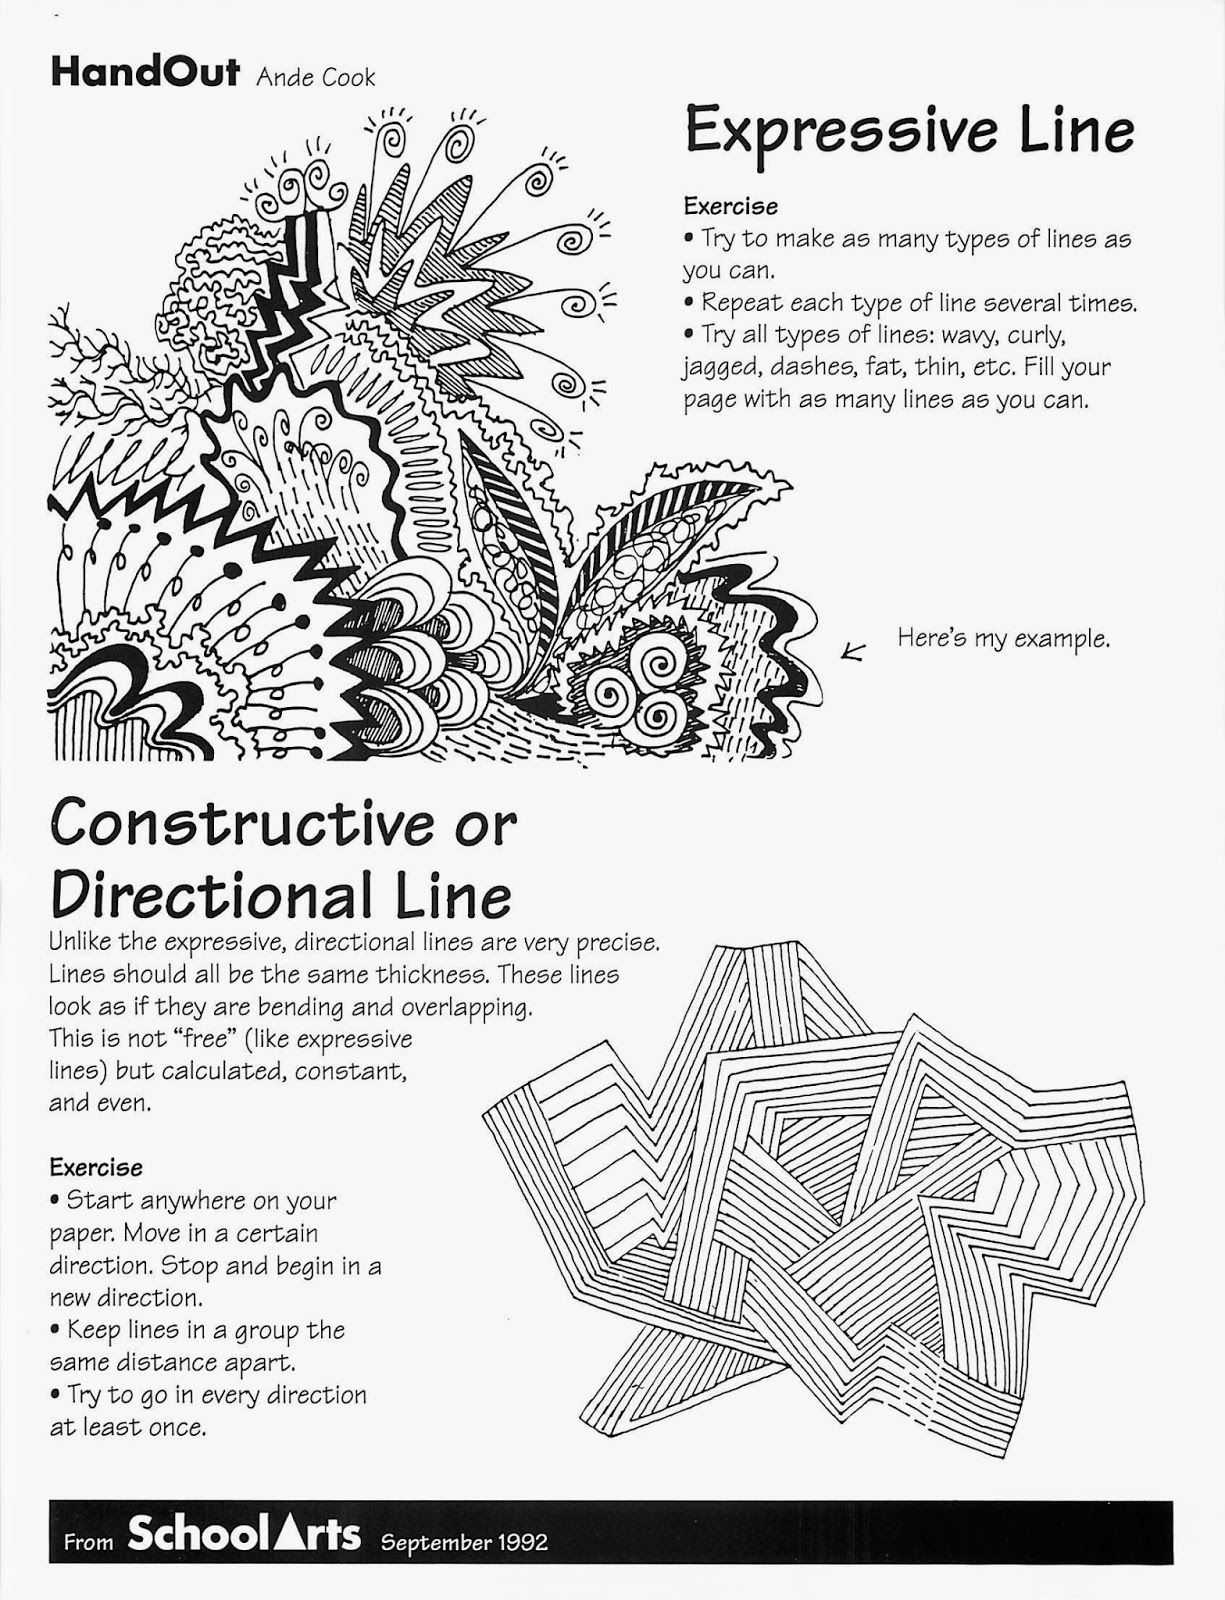 Free Ande Cook S Expressive And Directional Line Handout With A Complete Sub Lesson Too